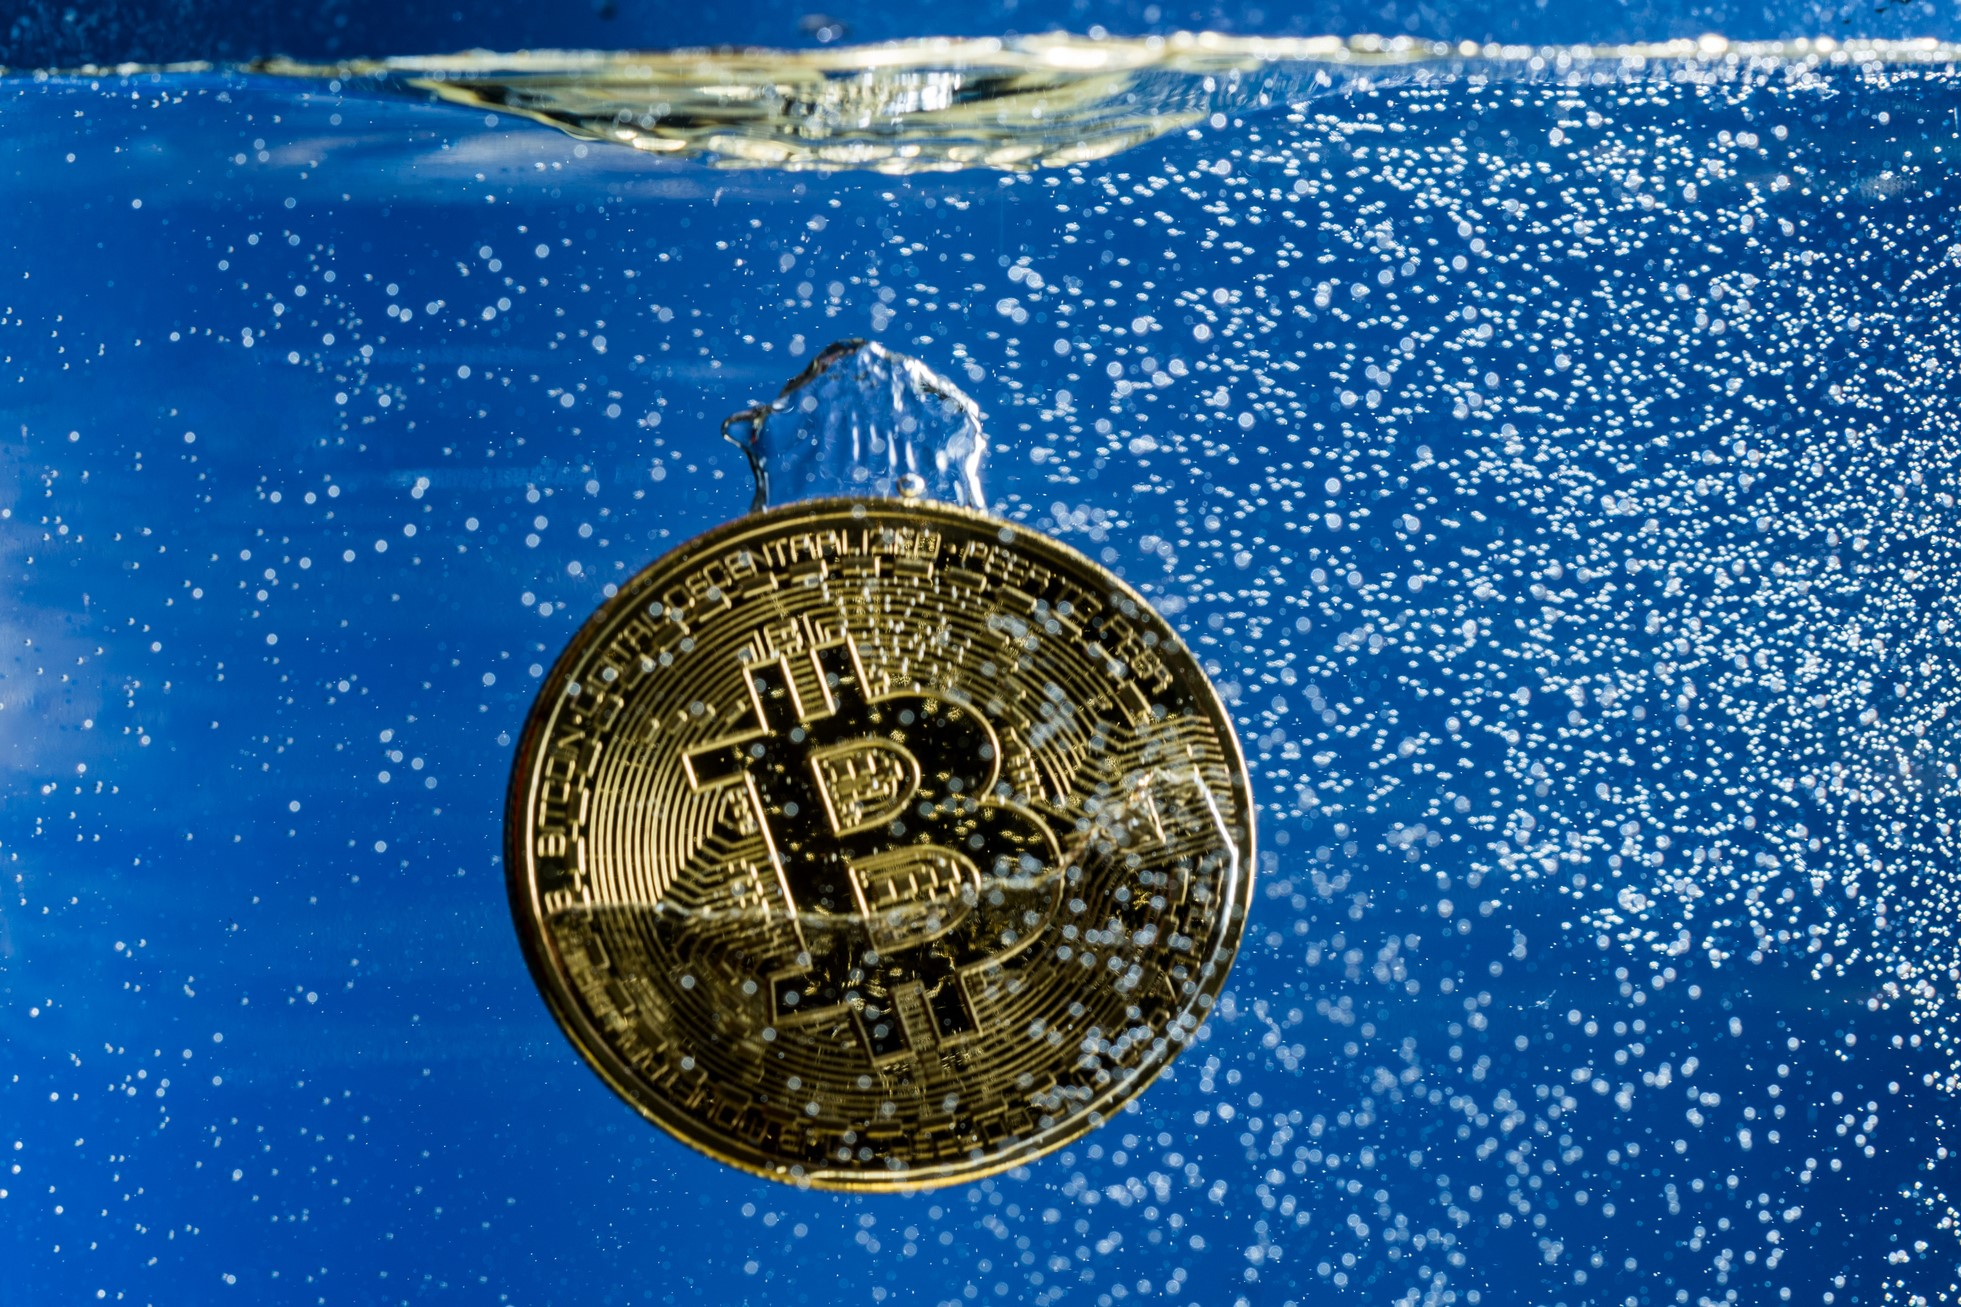 Bitcoin Sell-Off Caused by Futures Expiring - Tom Lee